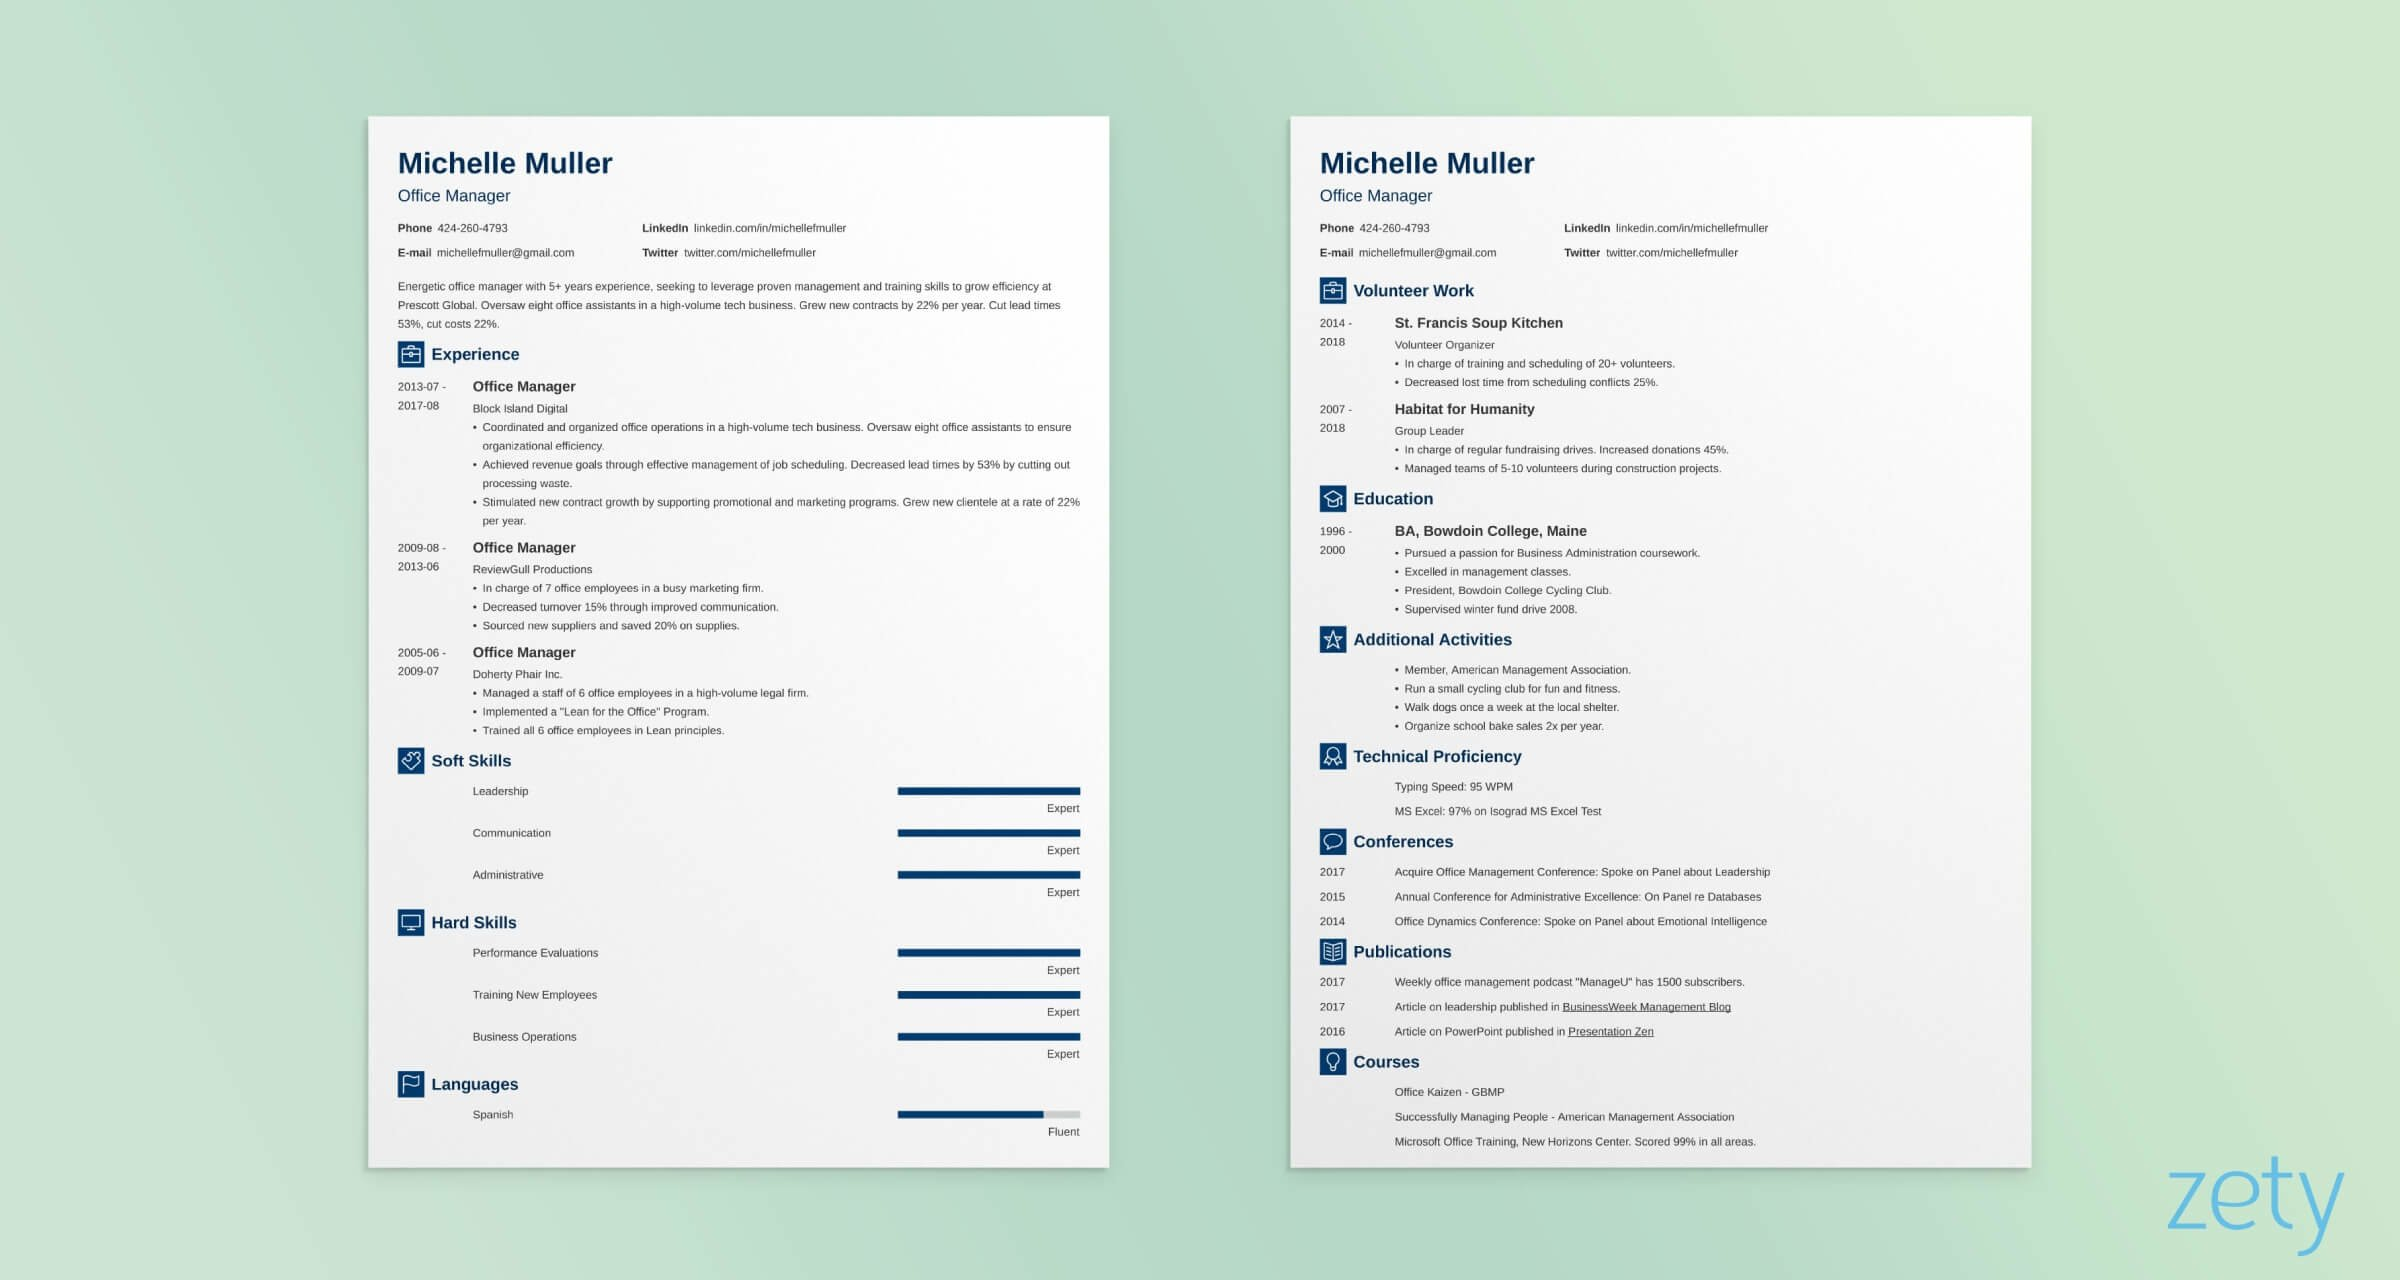 resume it crush your chances format tips one vs two newcast1 boilermaker cover letter Resume One Page Resume Vs Two Page